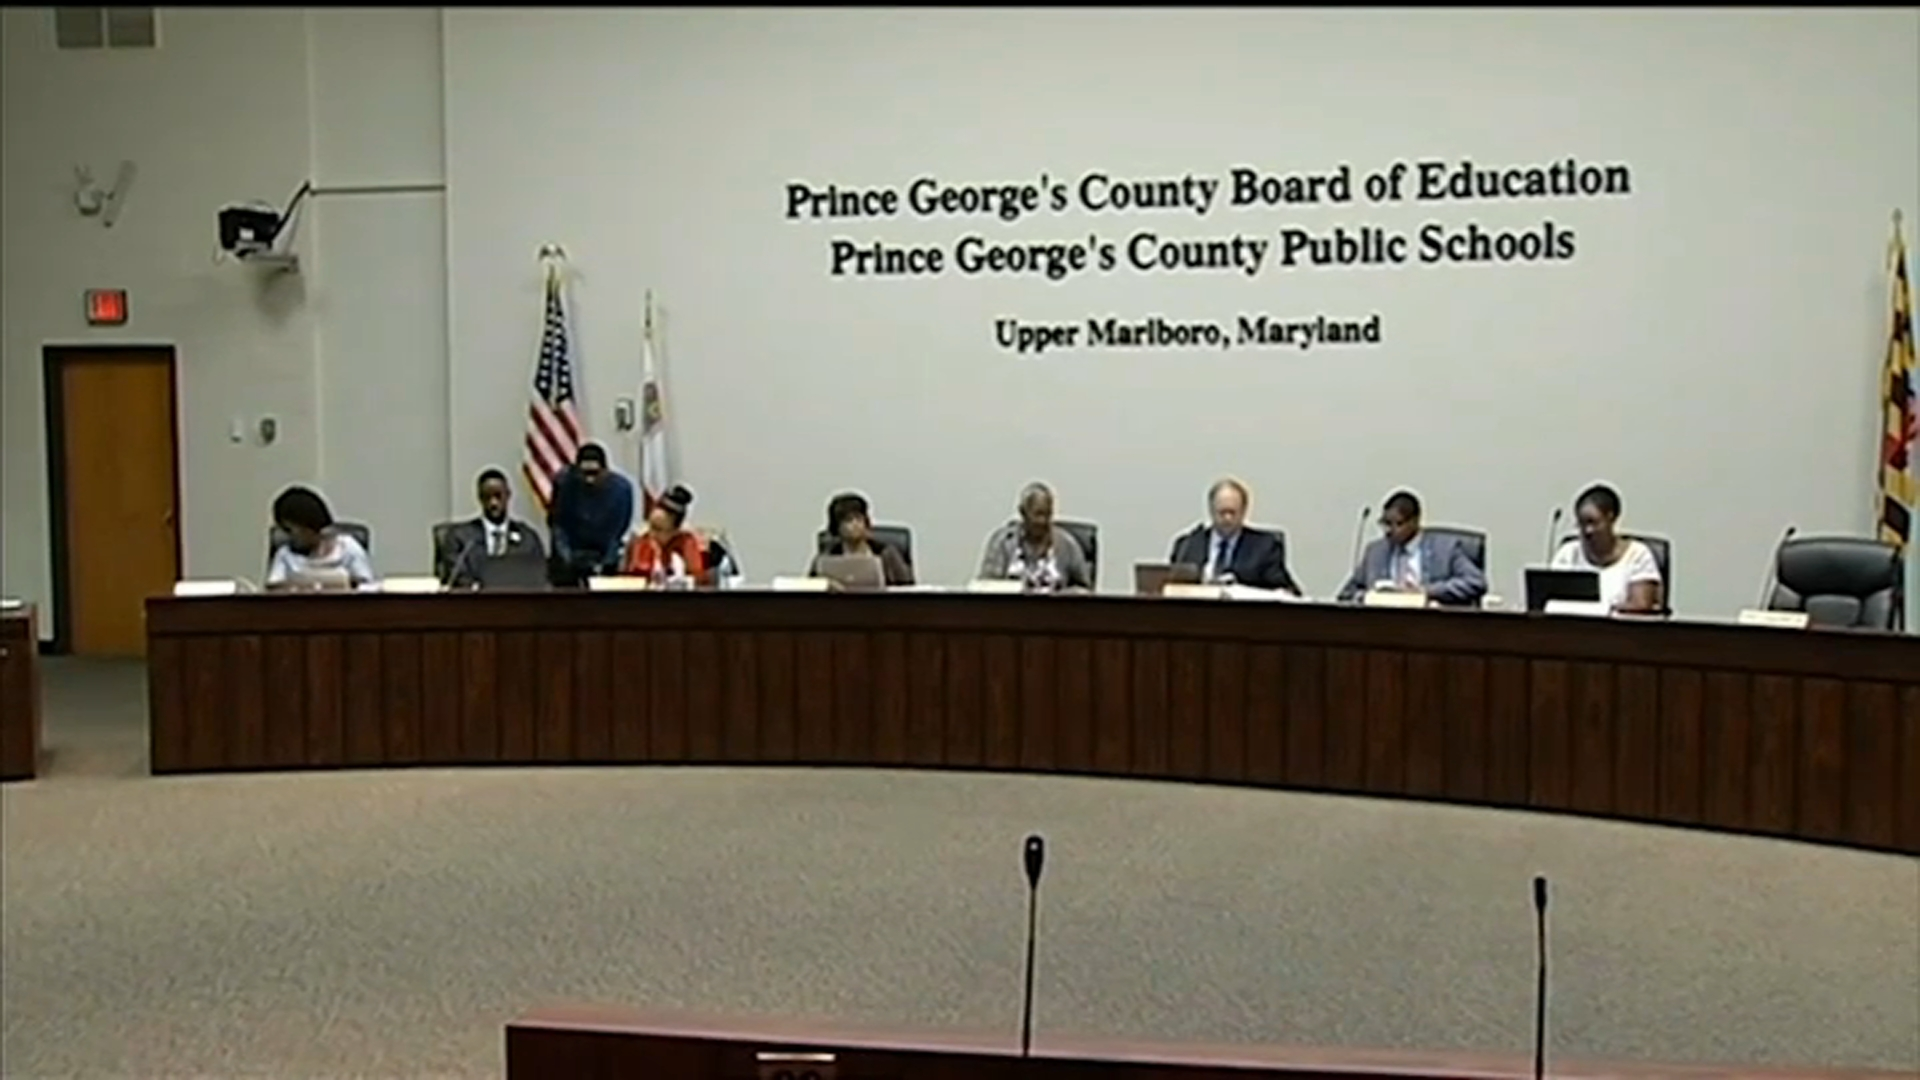 Controversy Surrounds Prince George's County Exec's School Board Appointments